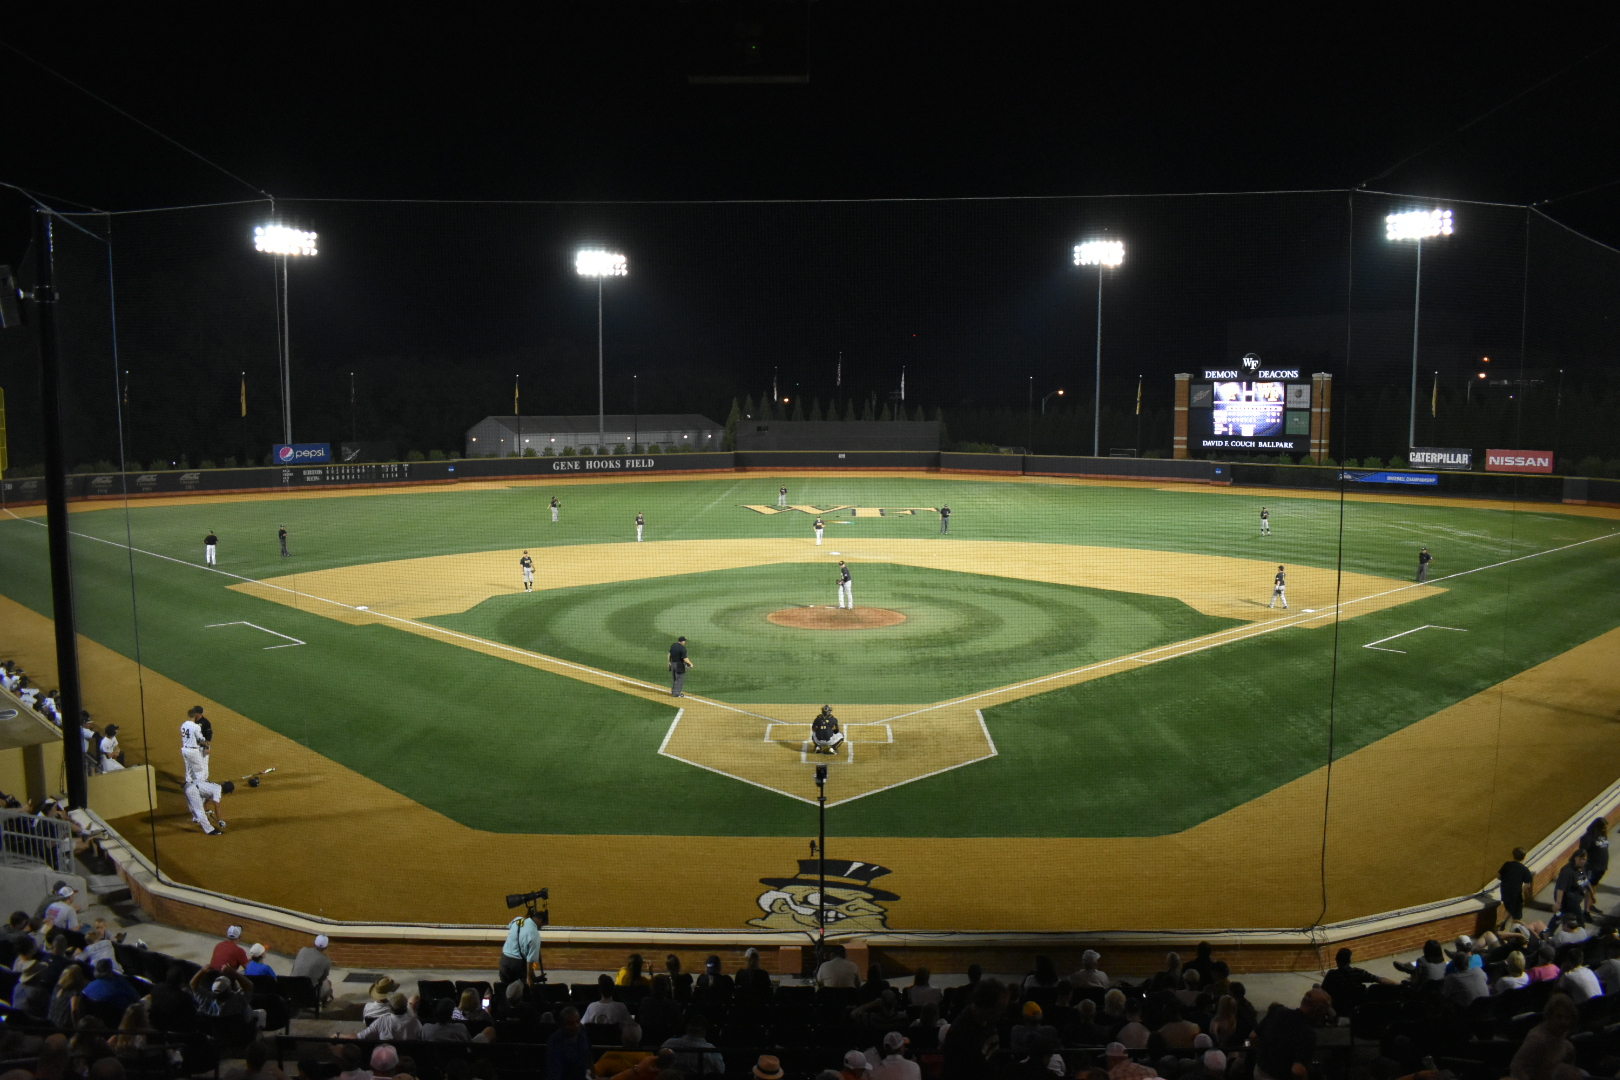 Wake Forest rallies past West Virginia 4-3 in NCAA tourney